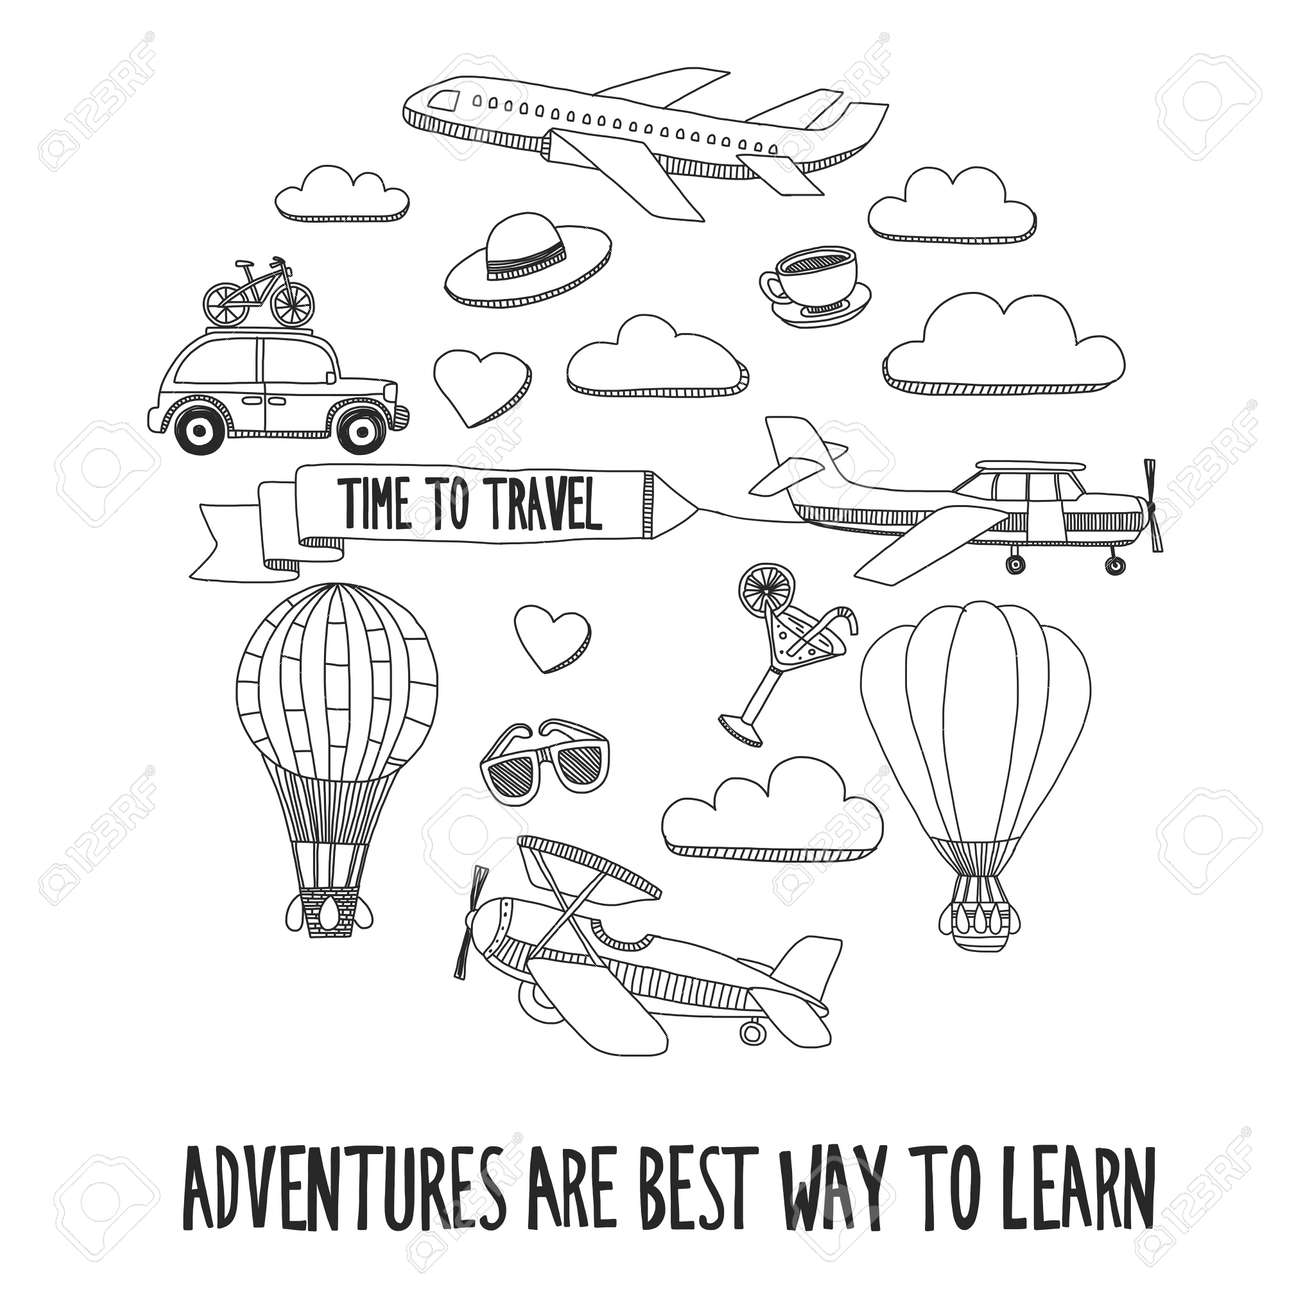 hand drawn doodle elements travel and adventure kids drawing royalty